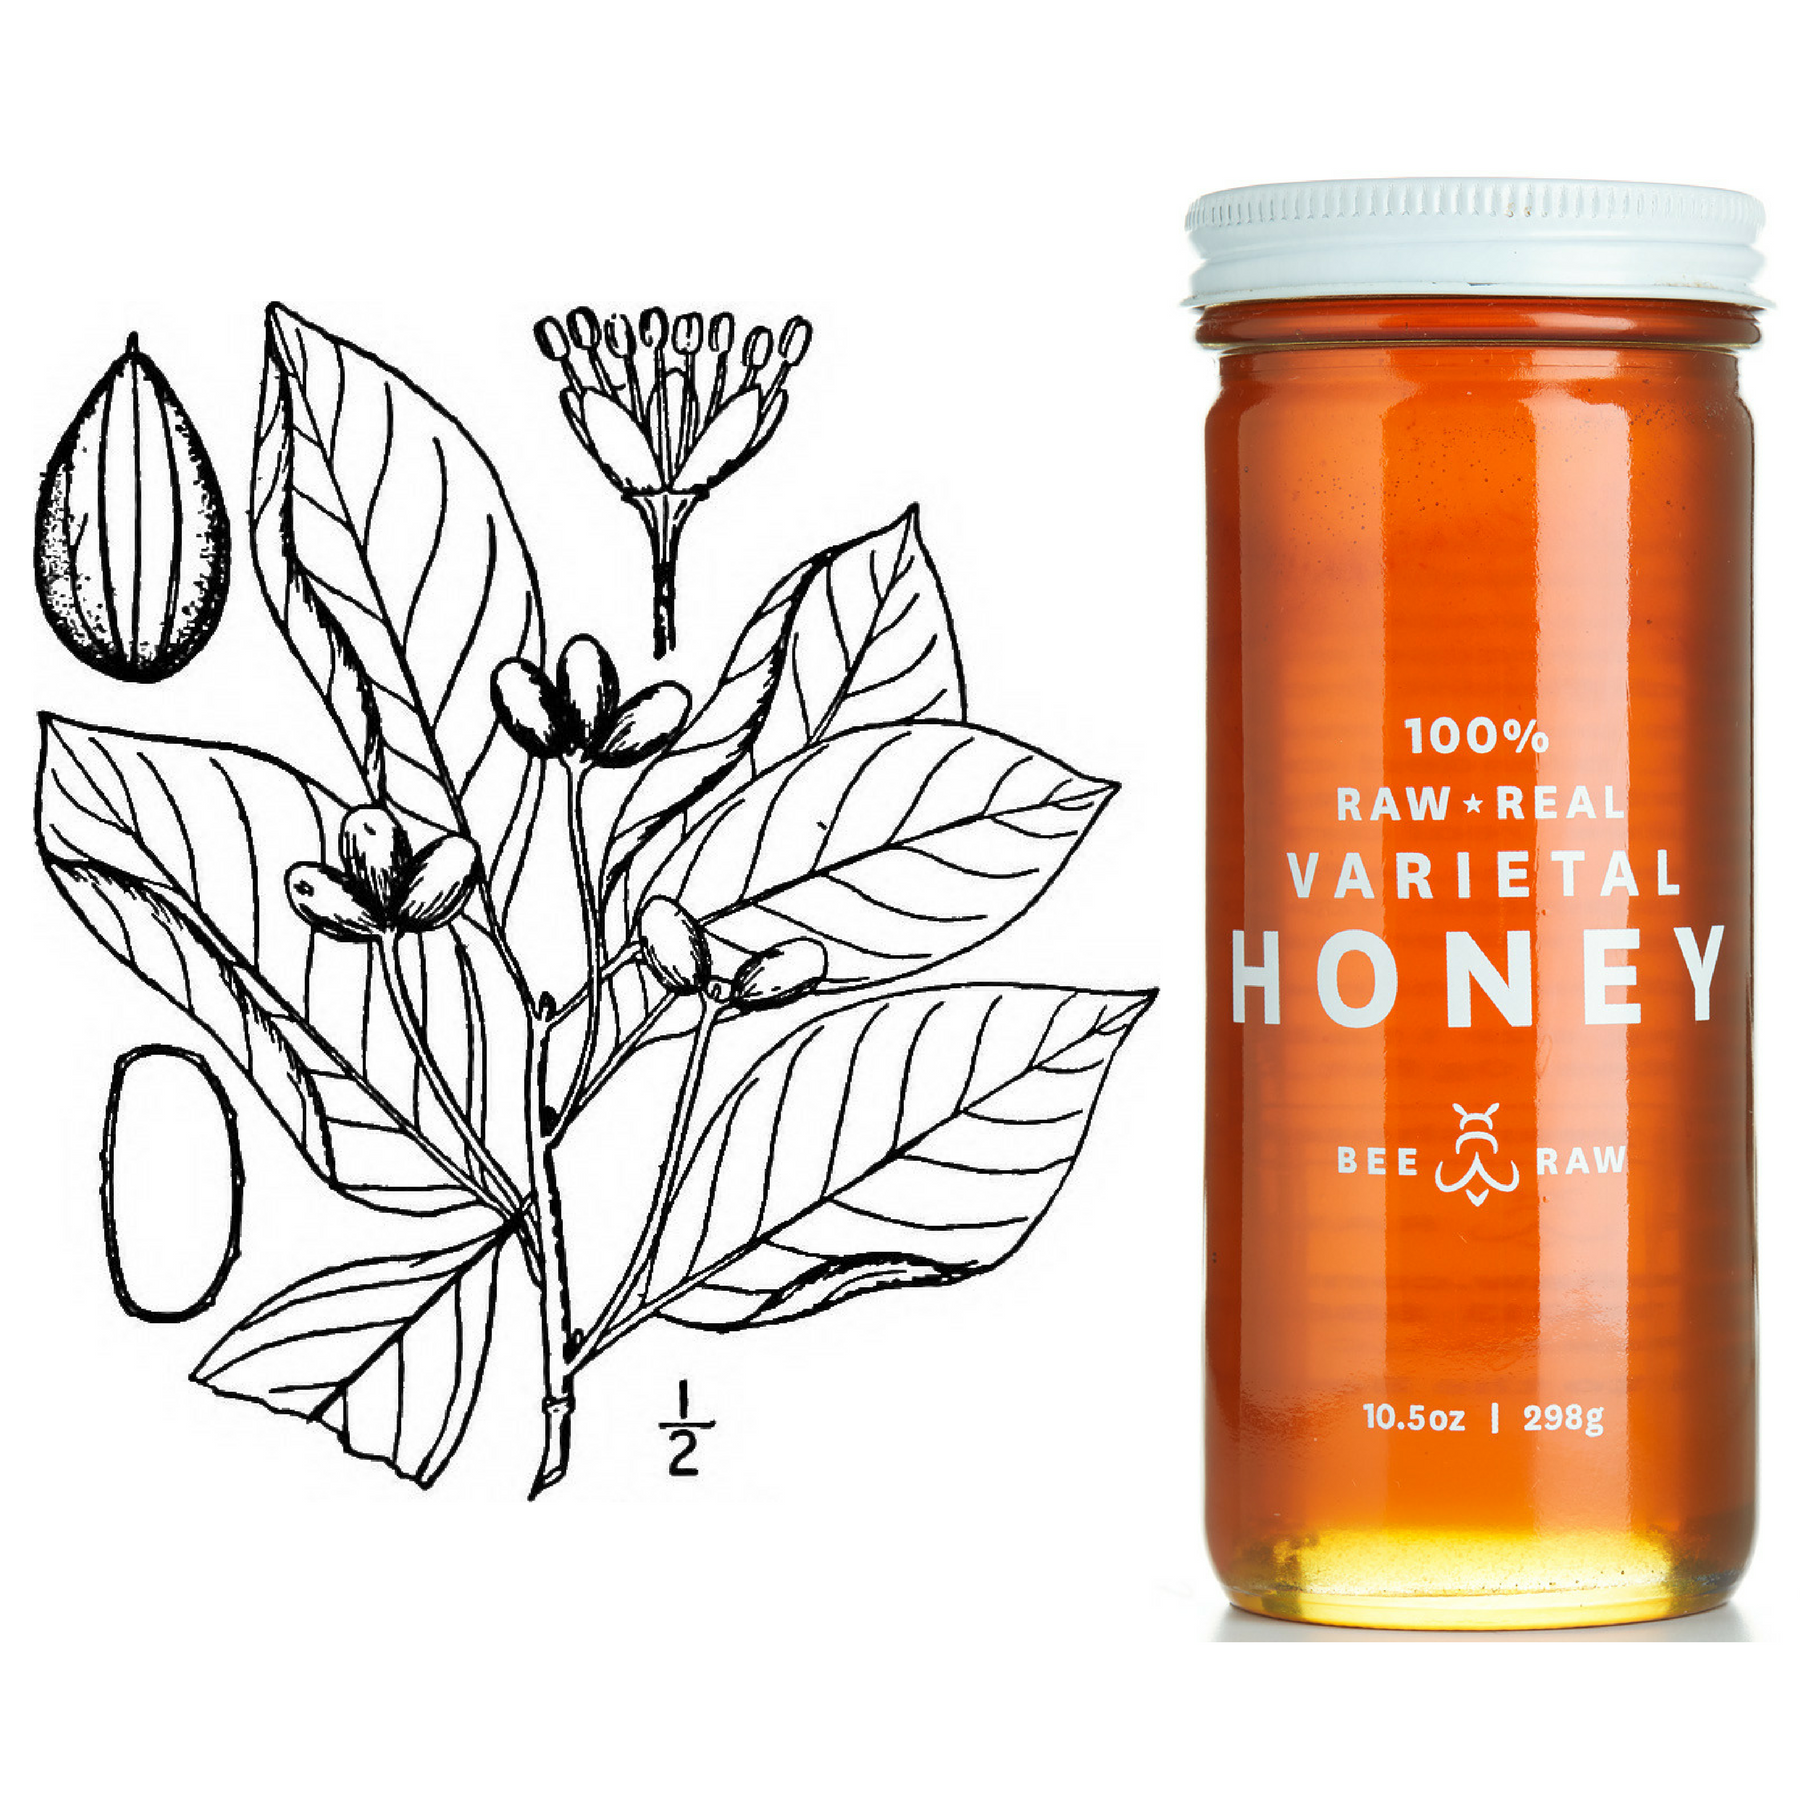 Nyssa ogeche Tupelo Honey.png